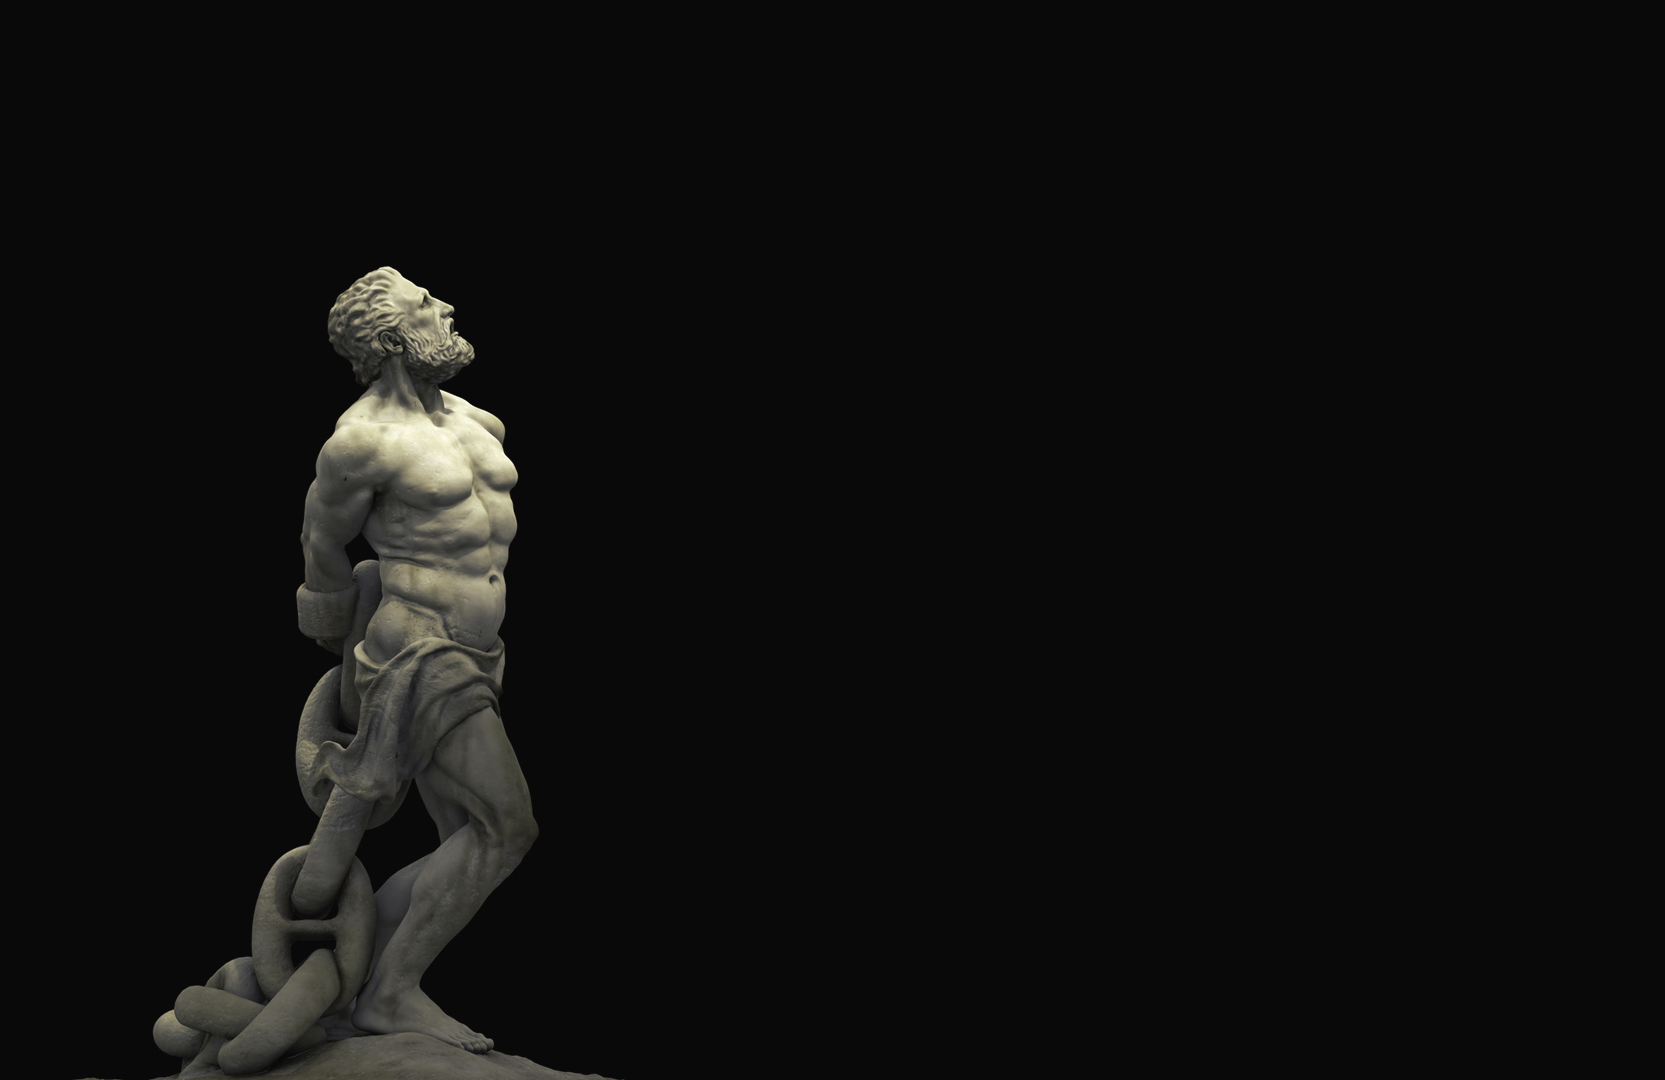 prometheus-artwork-black-background-greek-2710554-1920x1080-e1431107013767